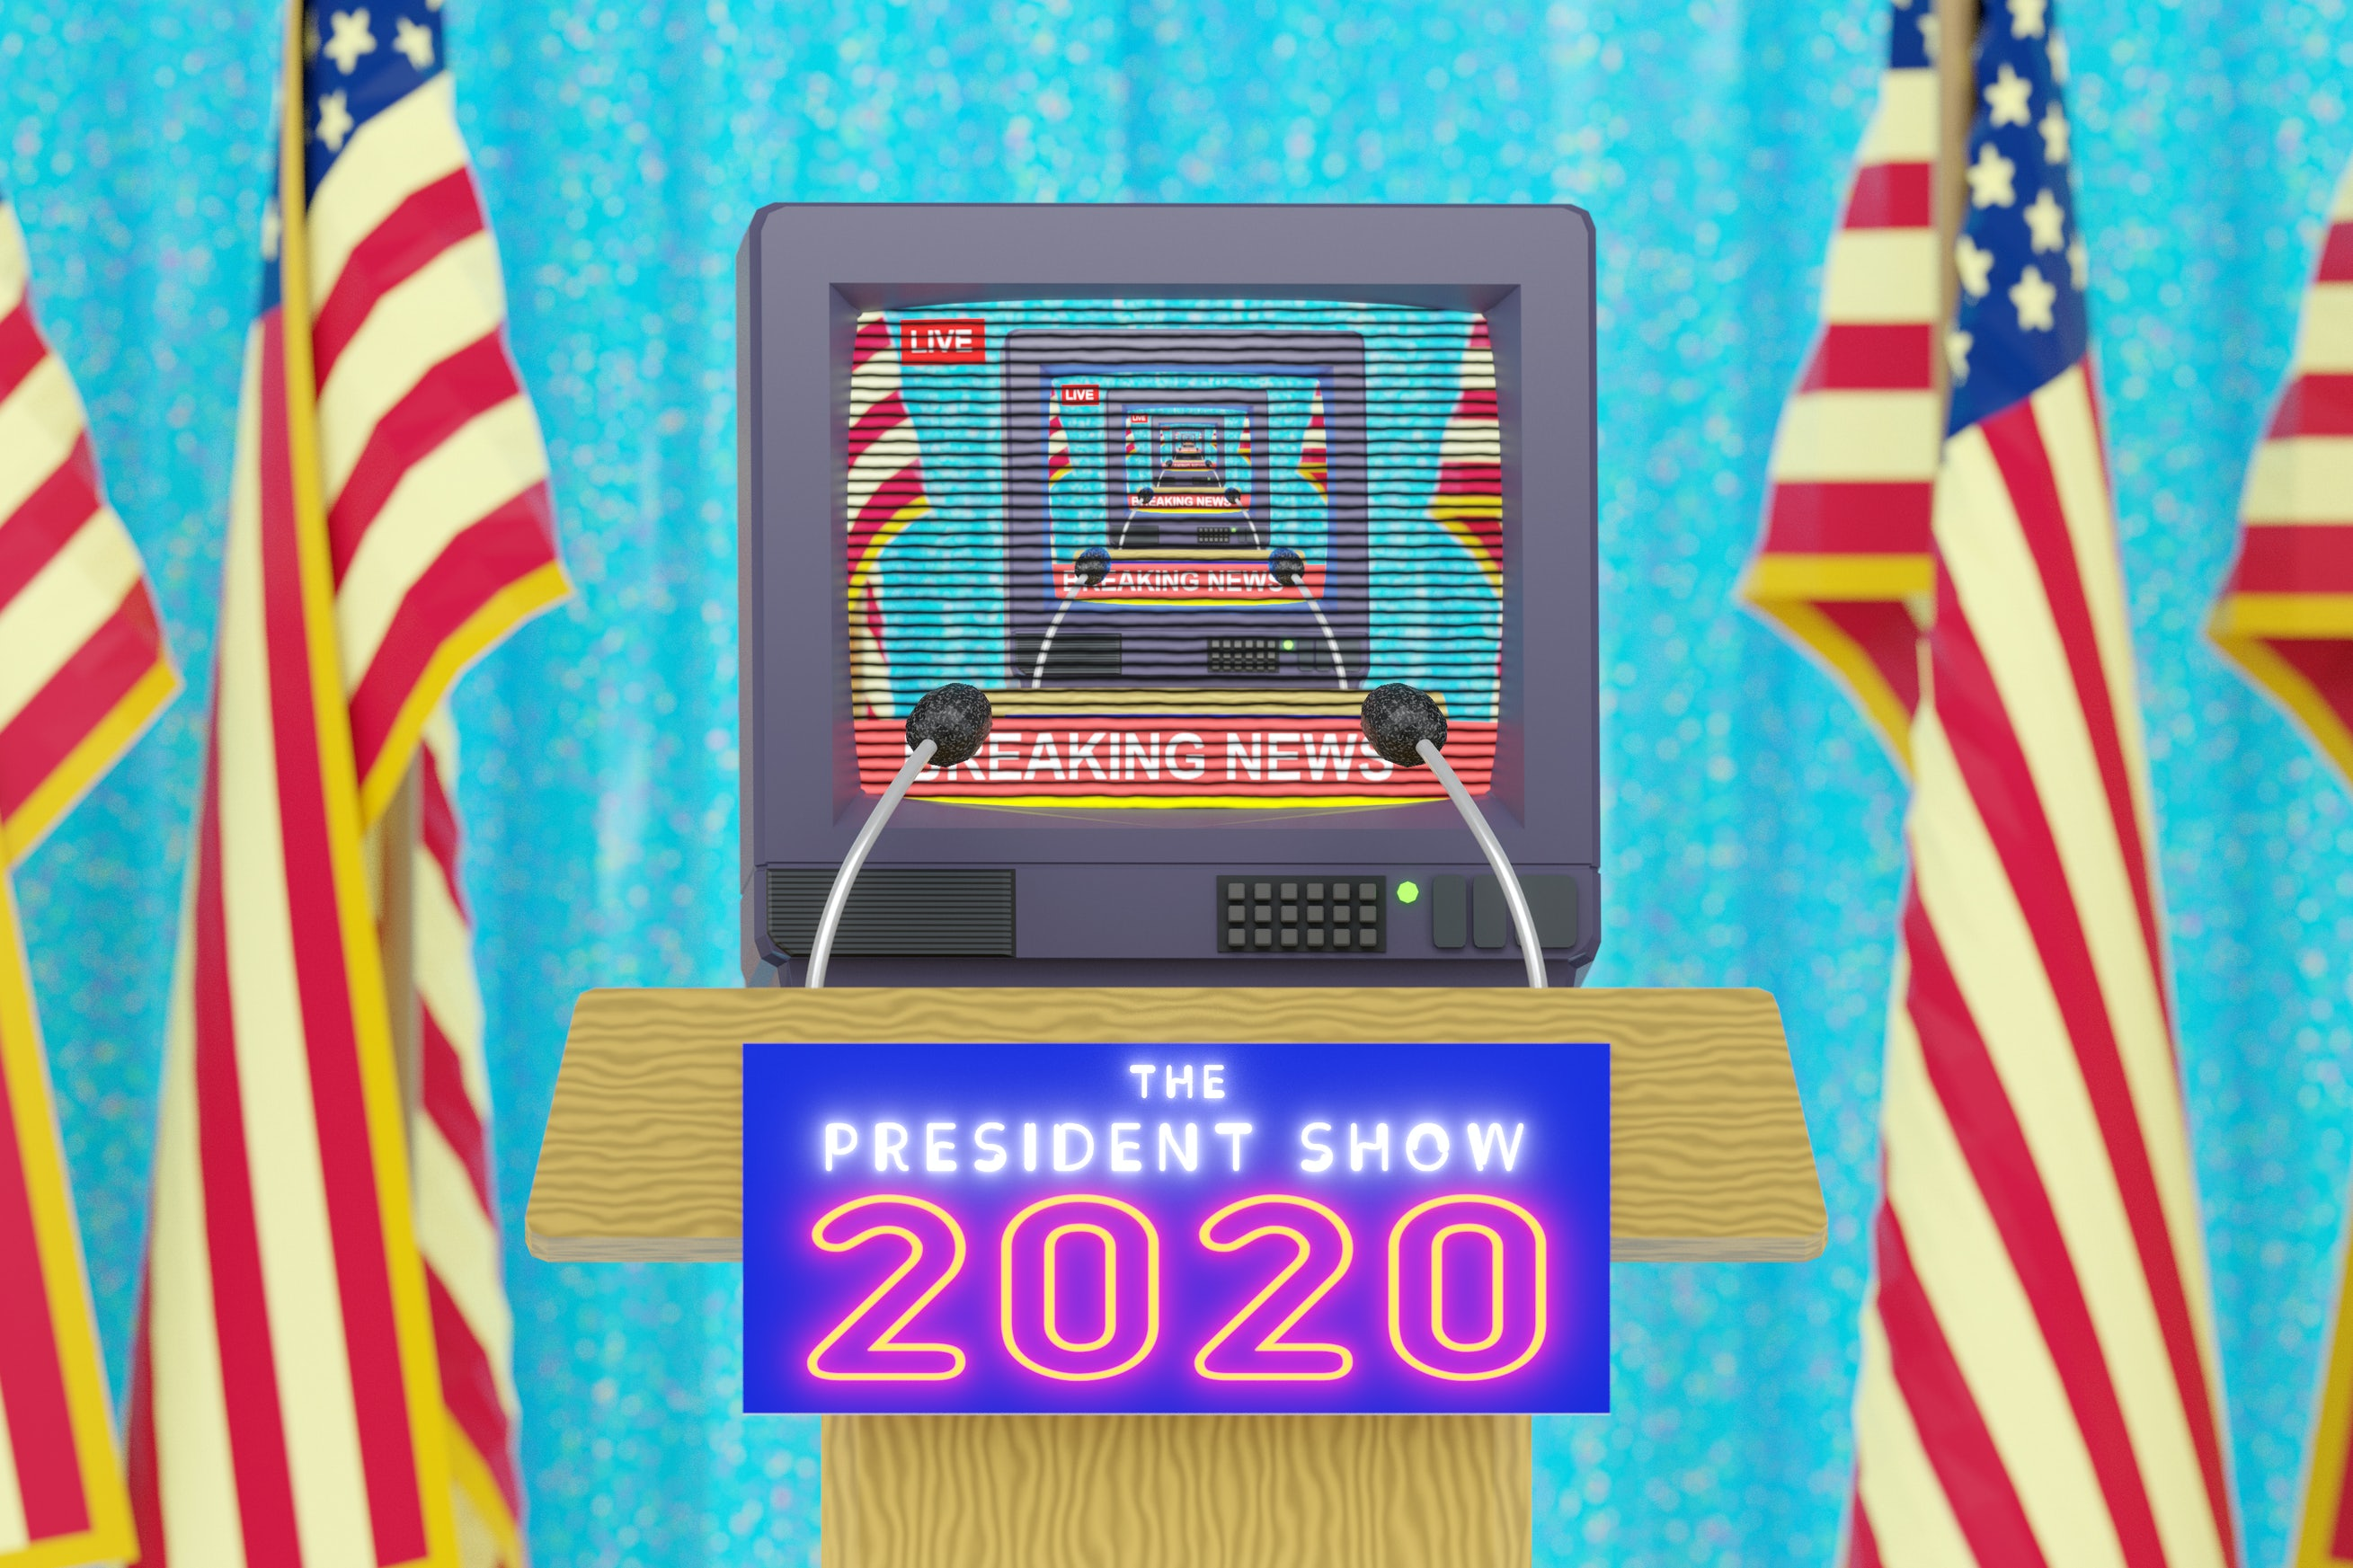 The New Republic - The Instant Nostalgia of the Televised Campaign